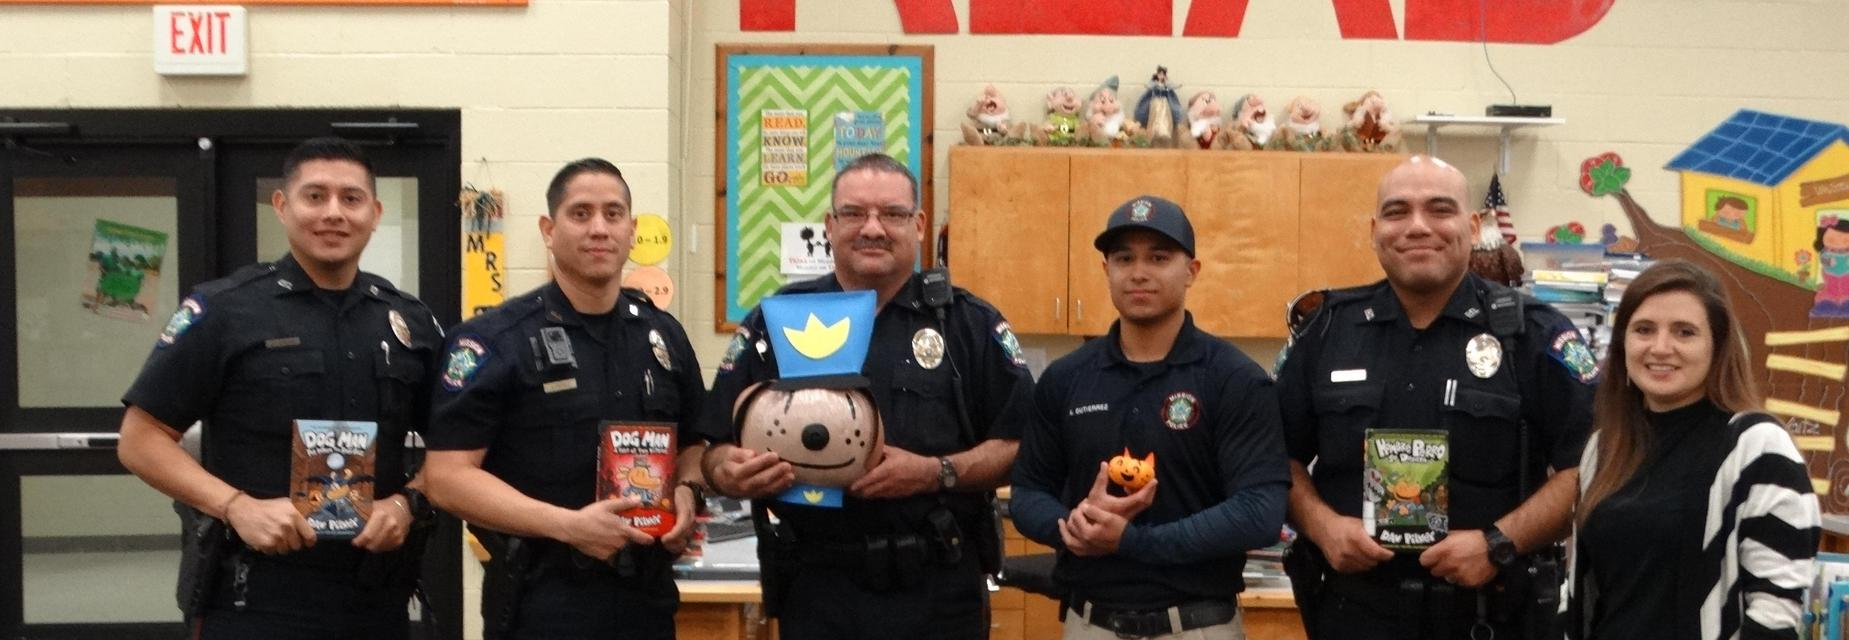 Mission PD visits the LRC